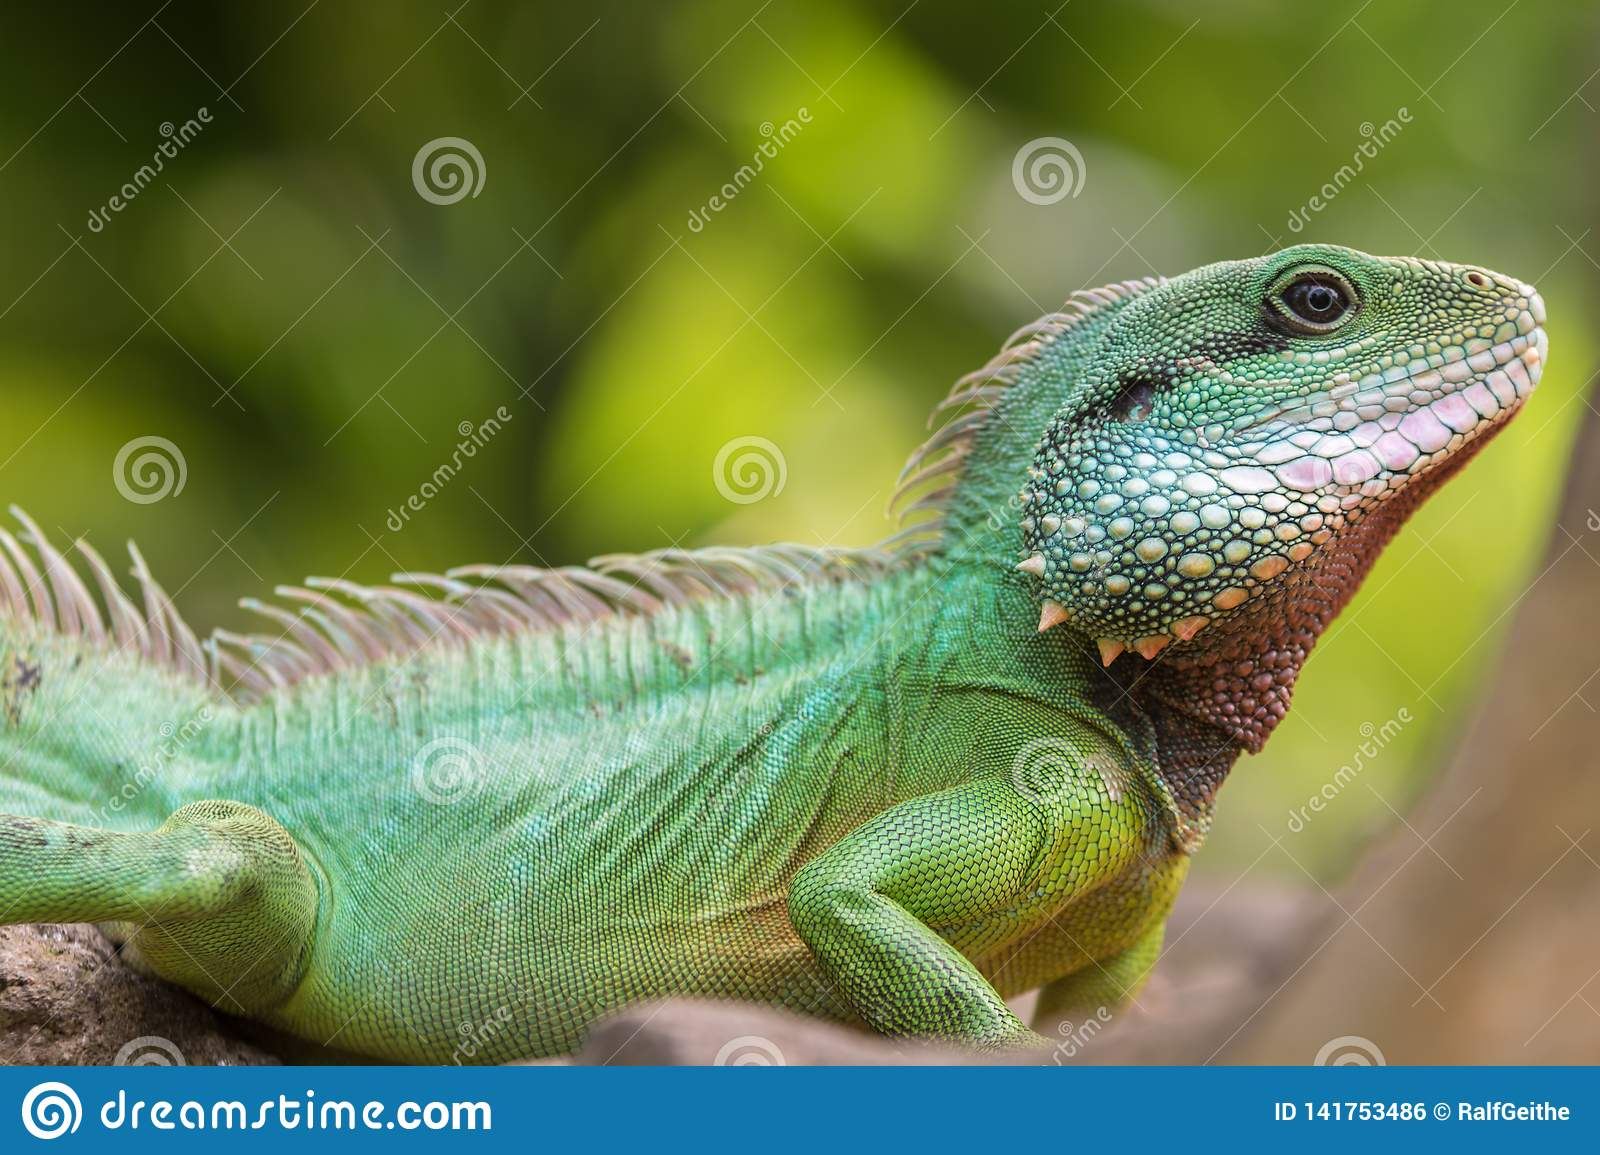 Green water dragon on a branch